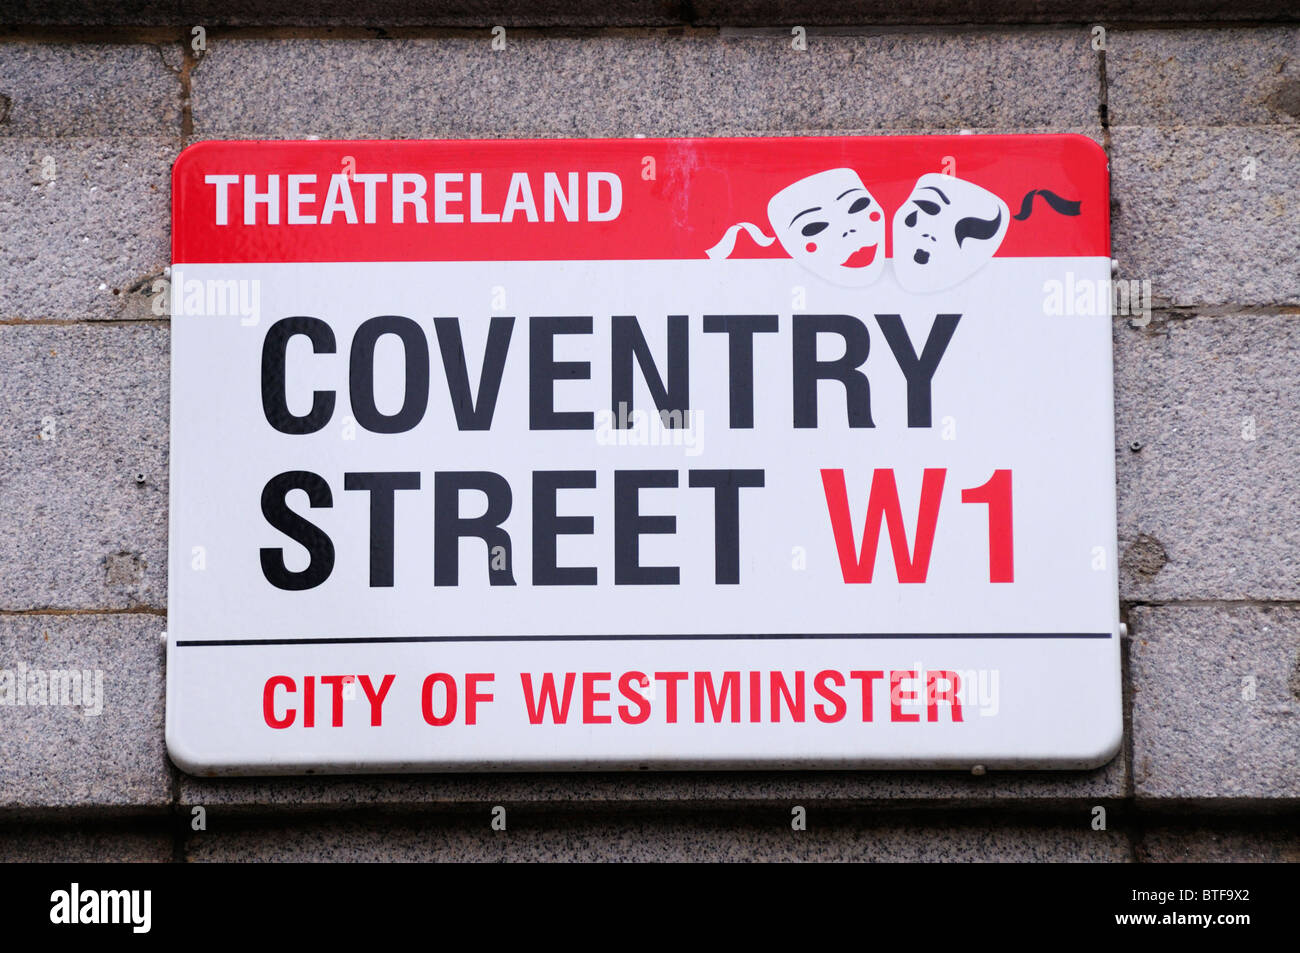 Coventry Street Theatreland Street, Sign, London, England, UK - Stock Image